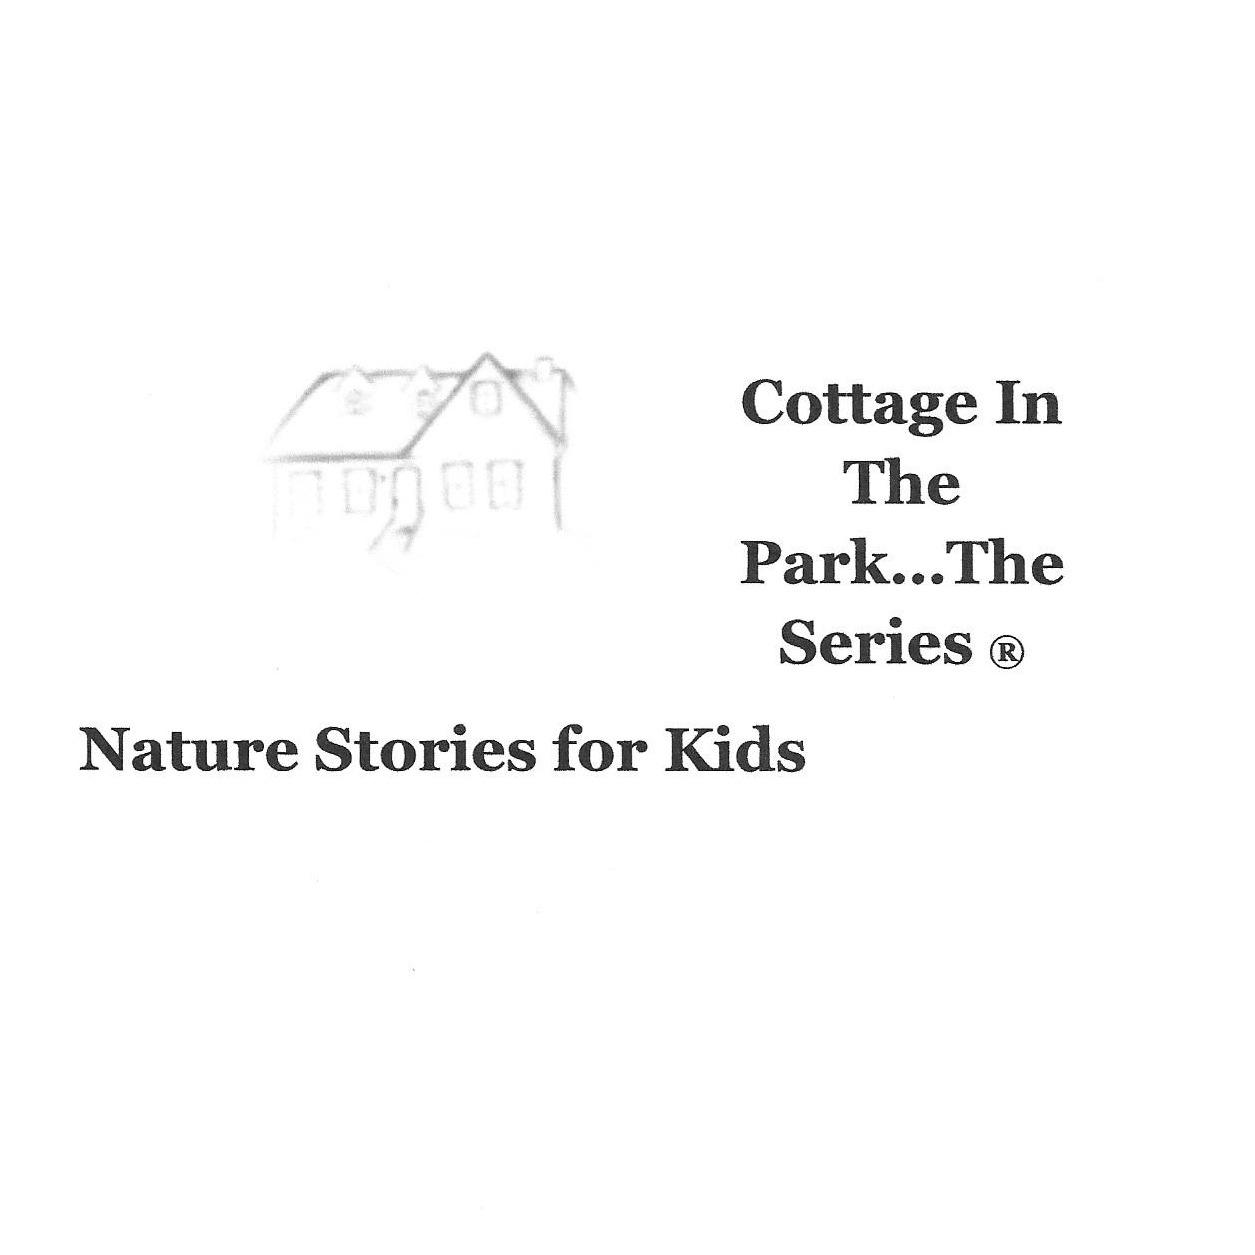 Cottage in the Park... The Series ®